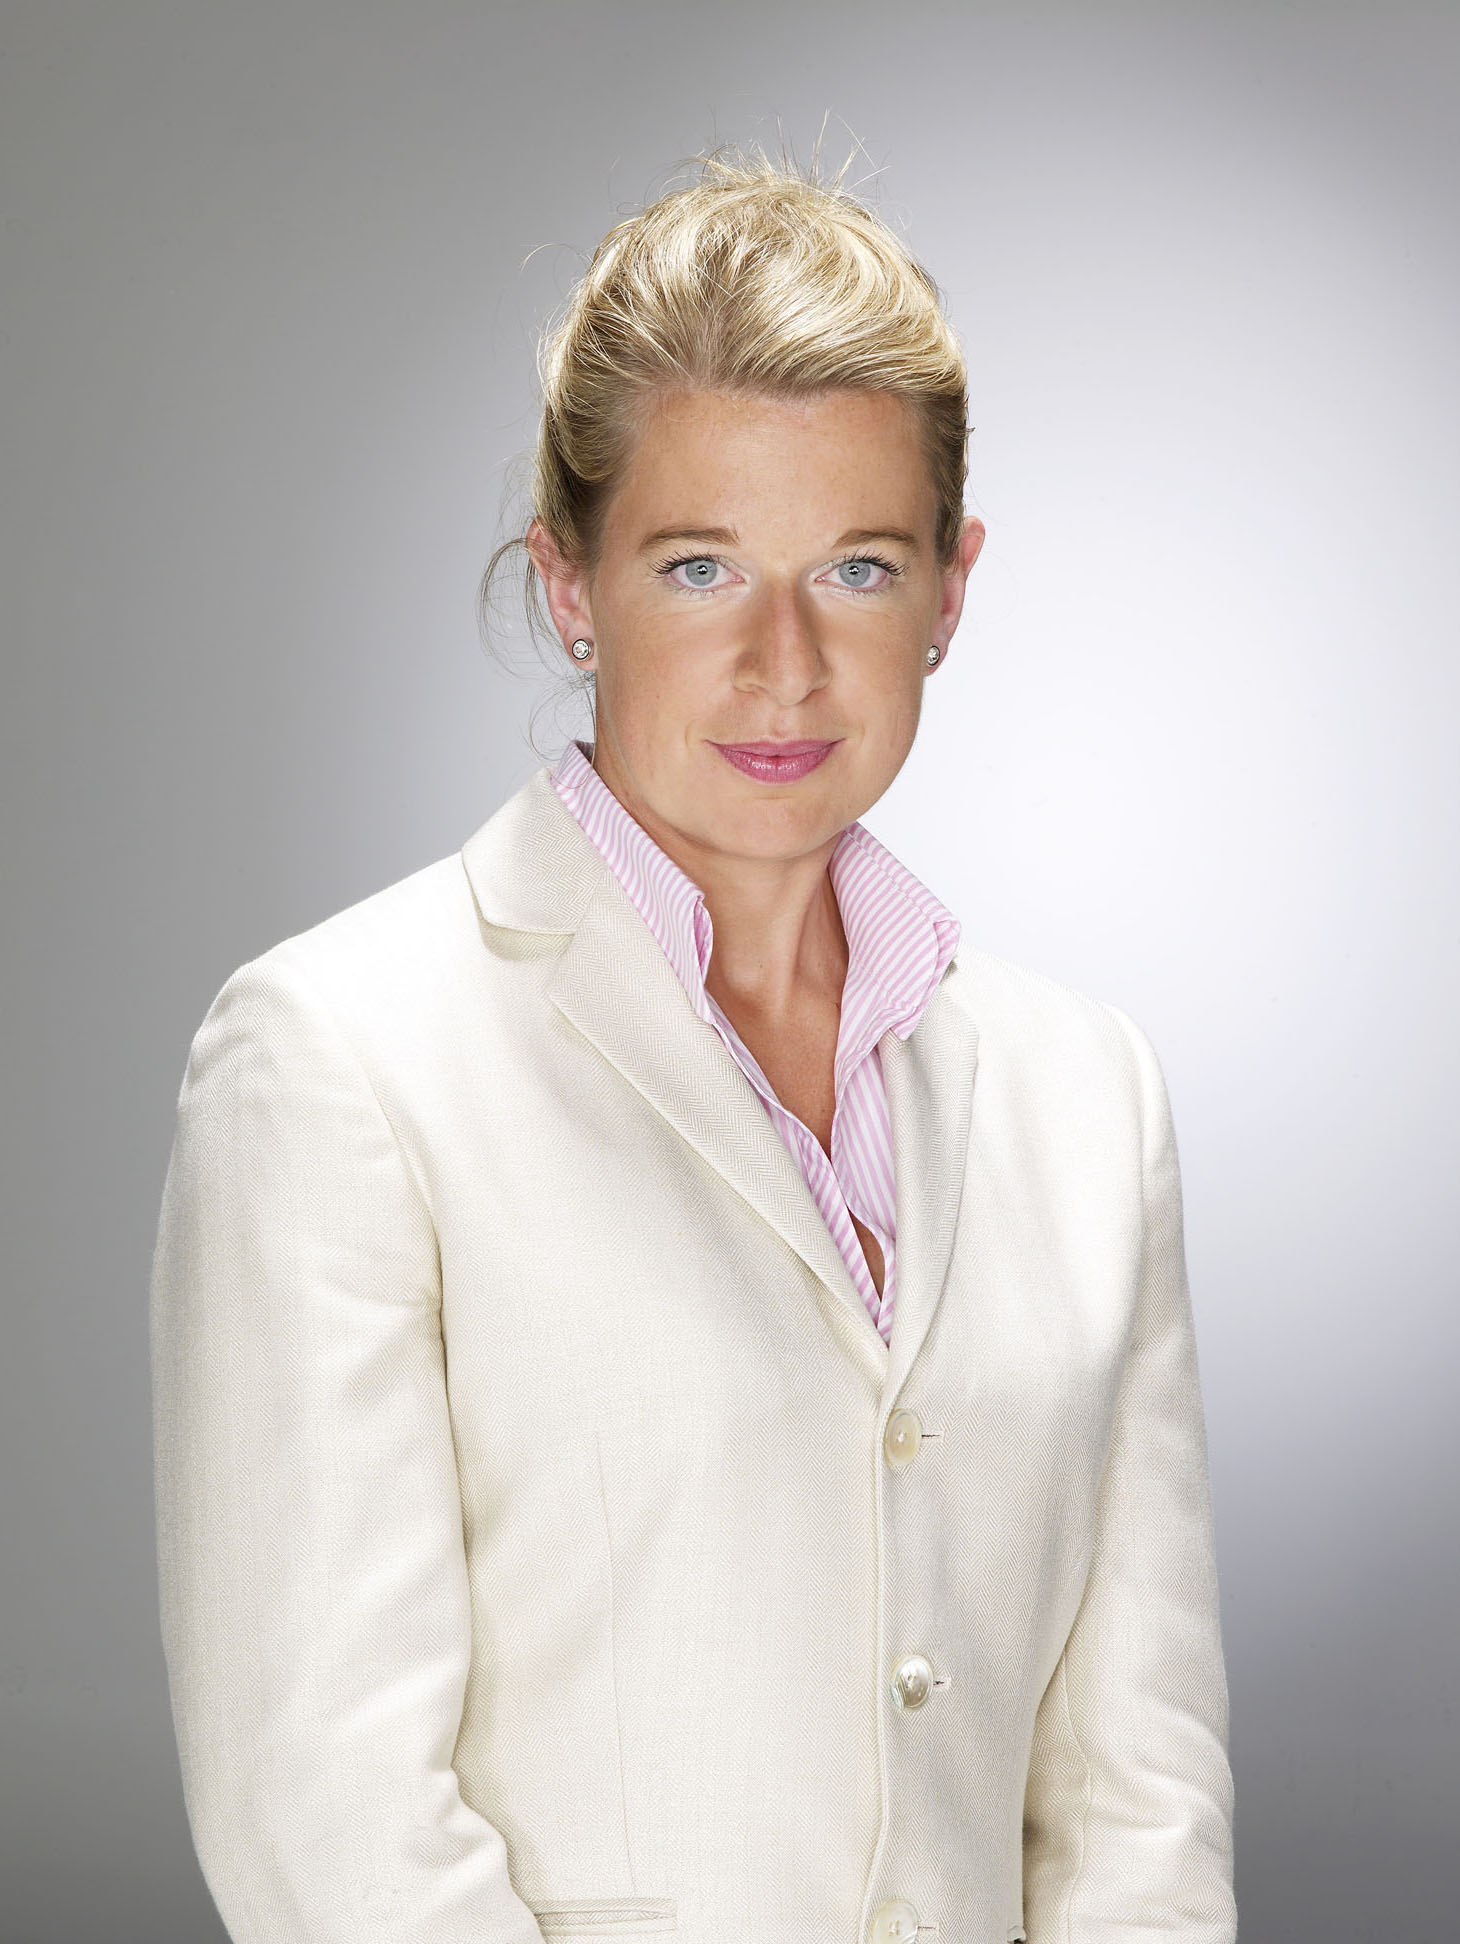 The Apprentice's Katie Hopkins to marry on TV